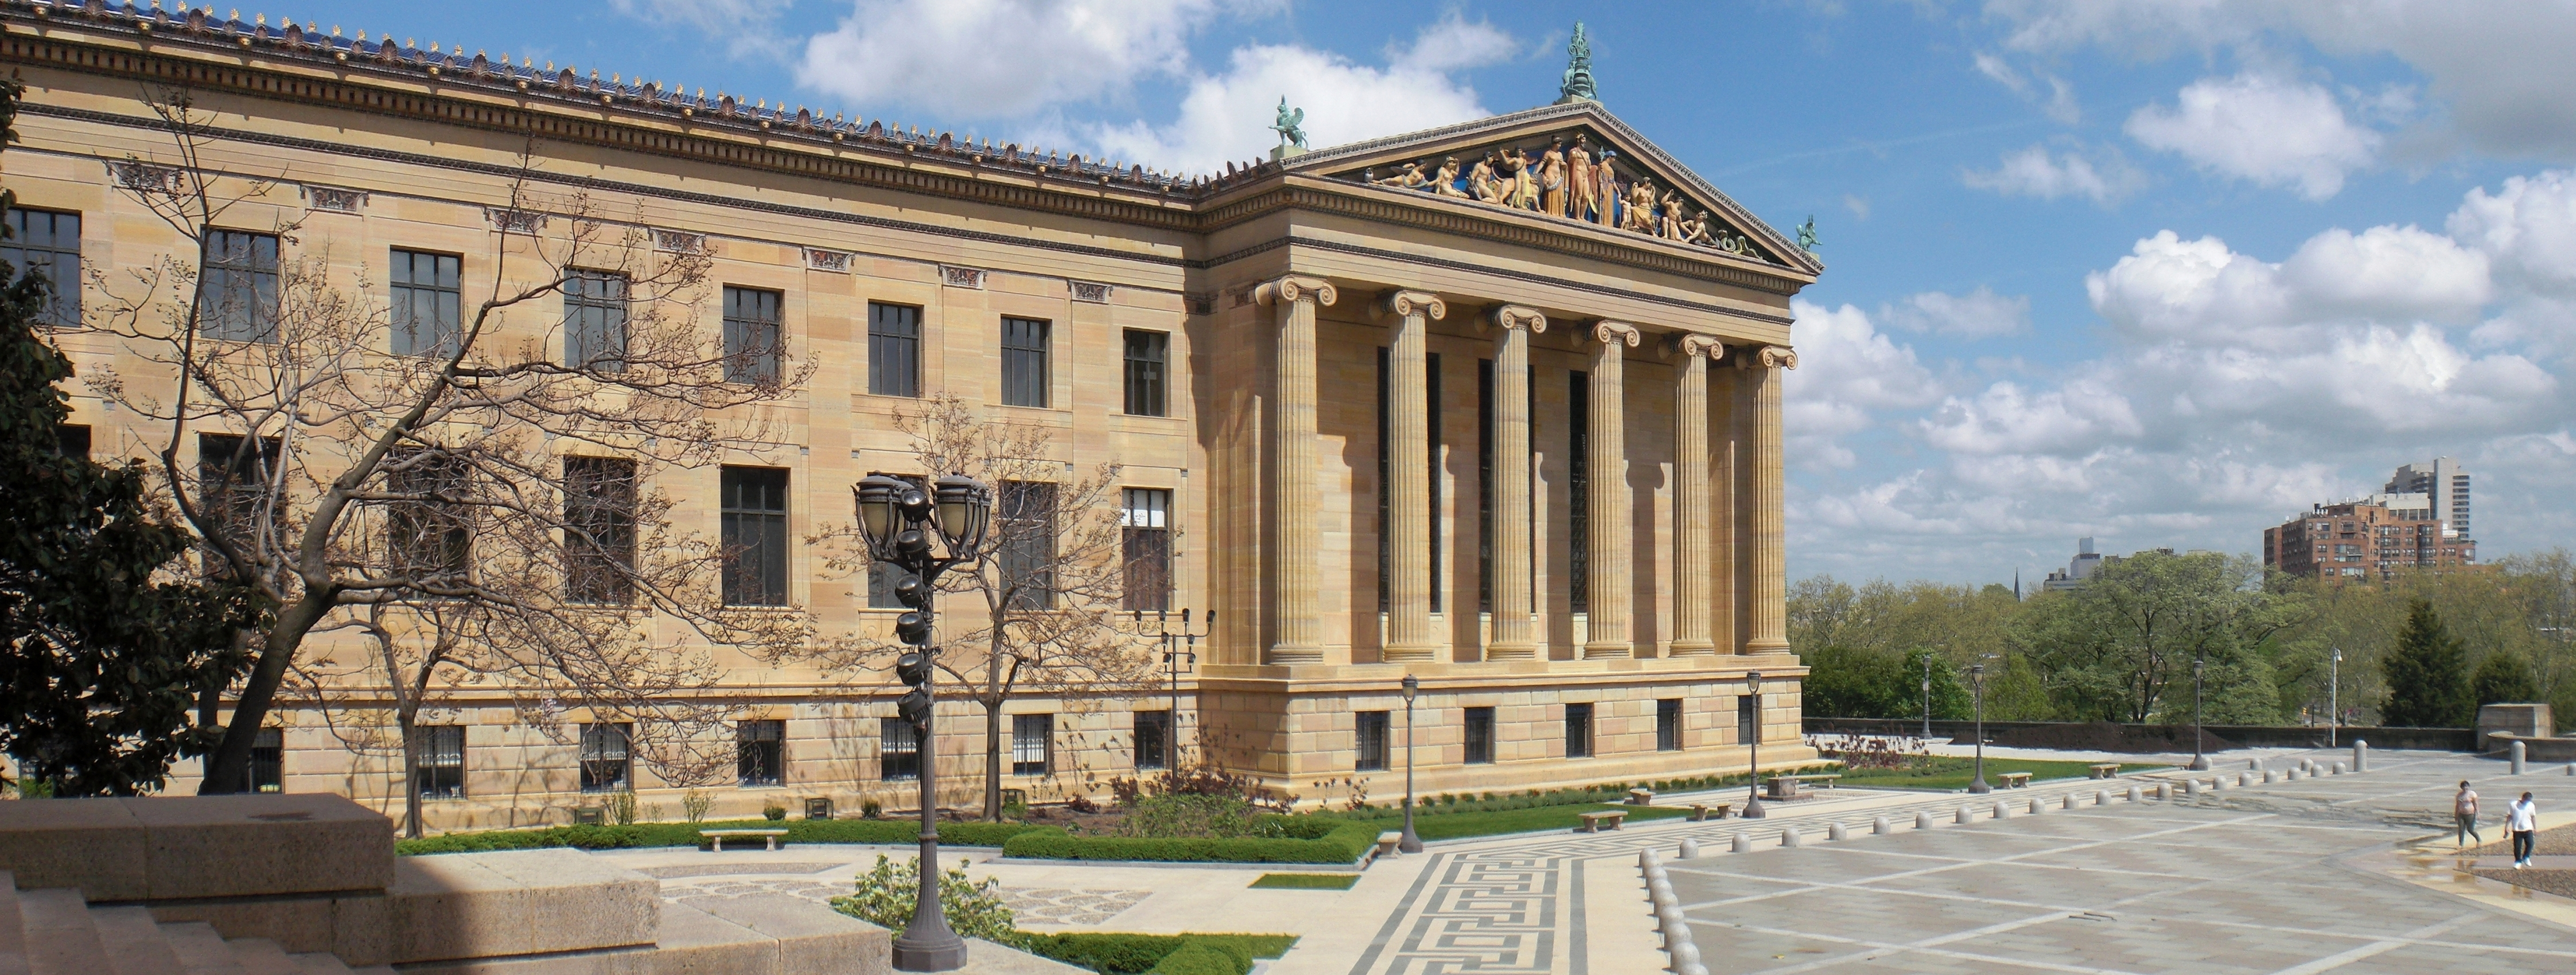 The_Main_Building,_Philadelphia_Museum_of_Art